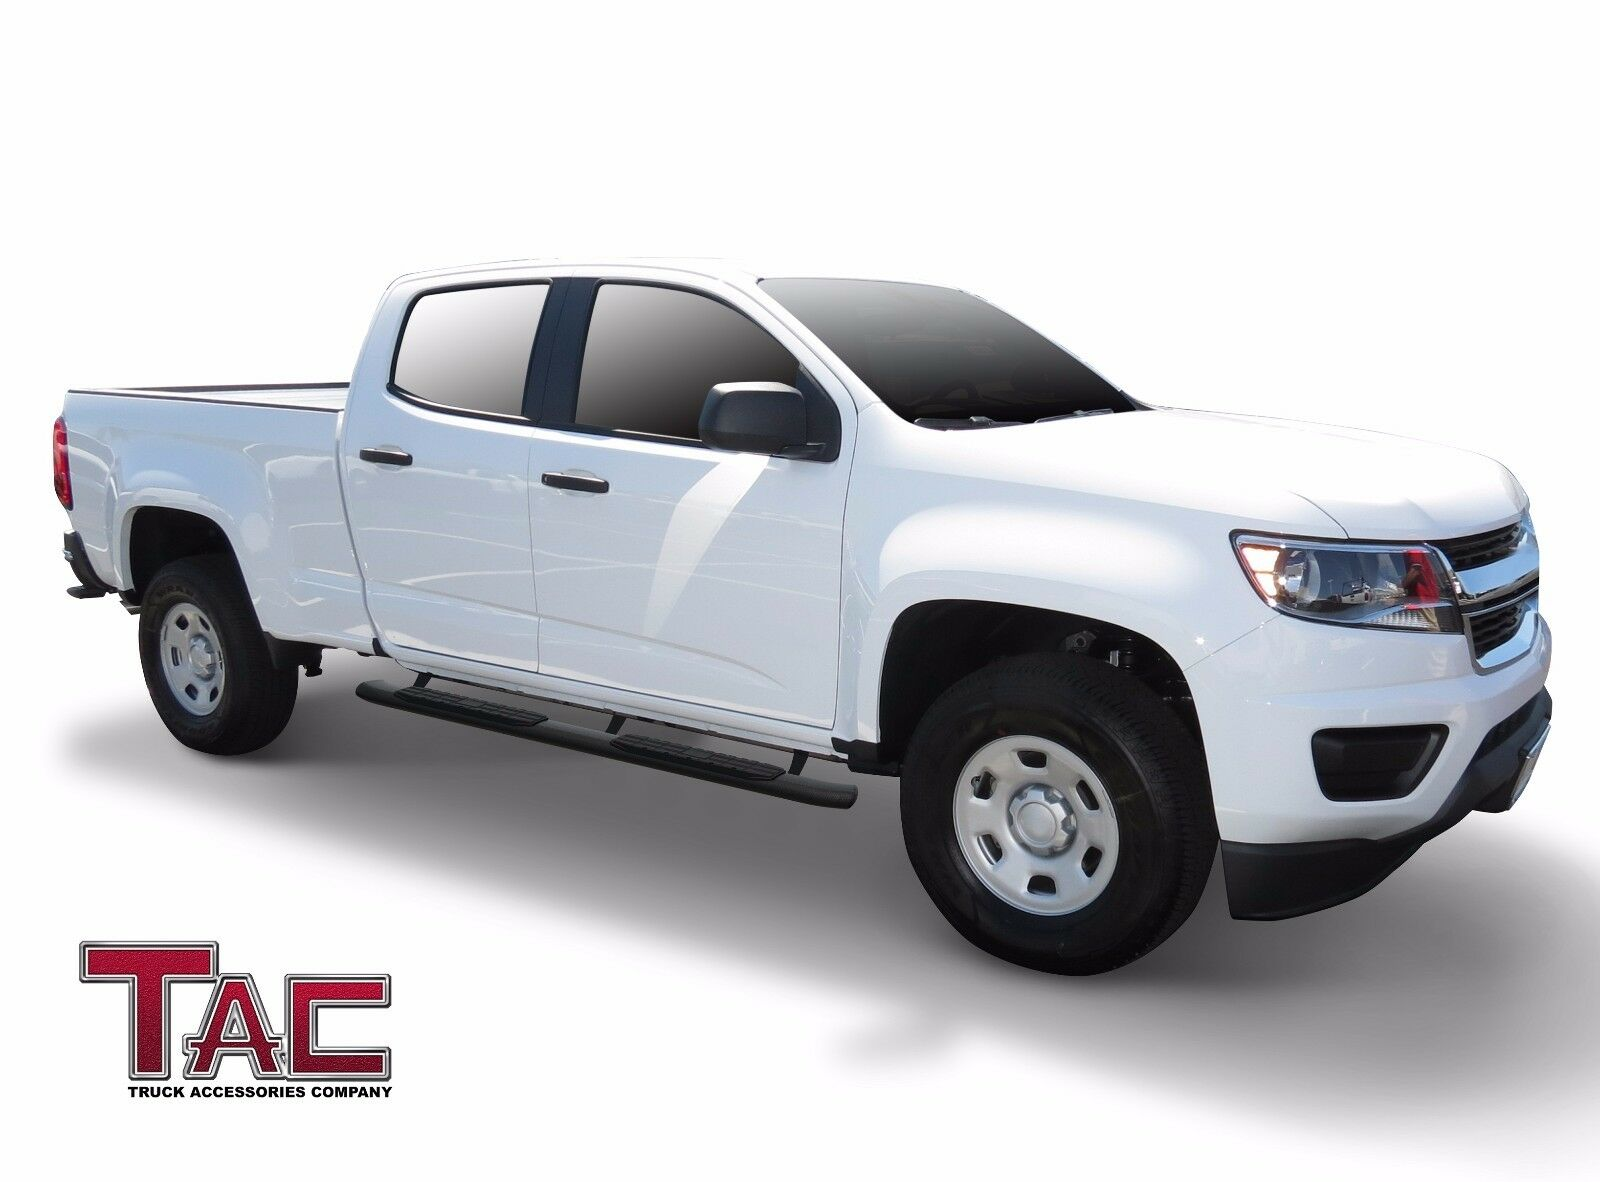 Tac Texture Side Step For 15 18 Chevy Colorado Gmc Canyon Crew Cab 1954 Steps 2015 2018 Pickup Truck 425 Oval Bend Black Nerf Bars Running Boards Powder